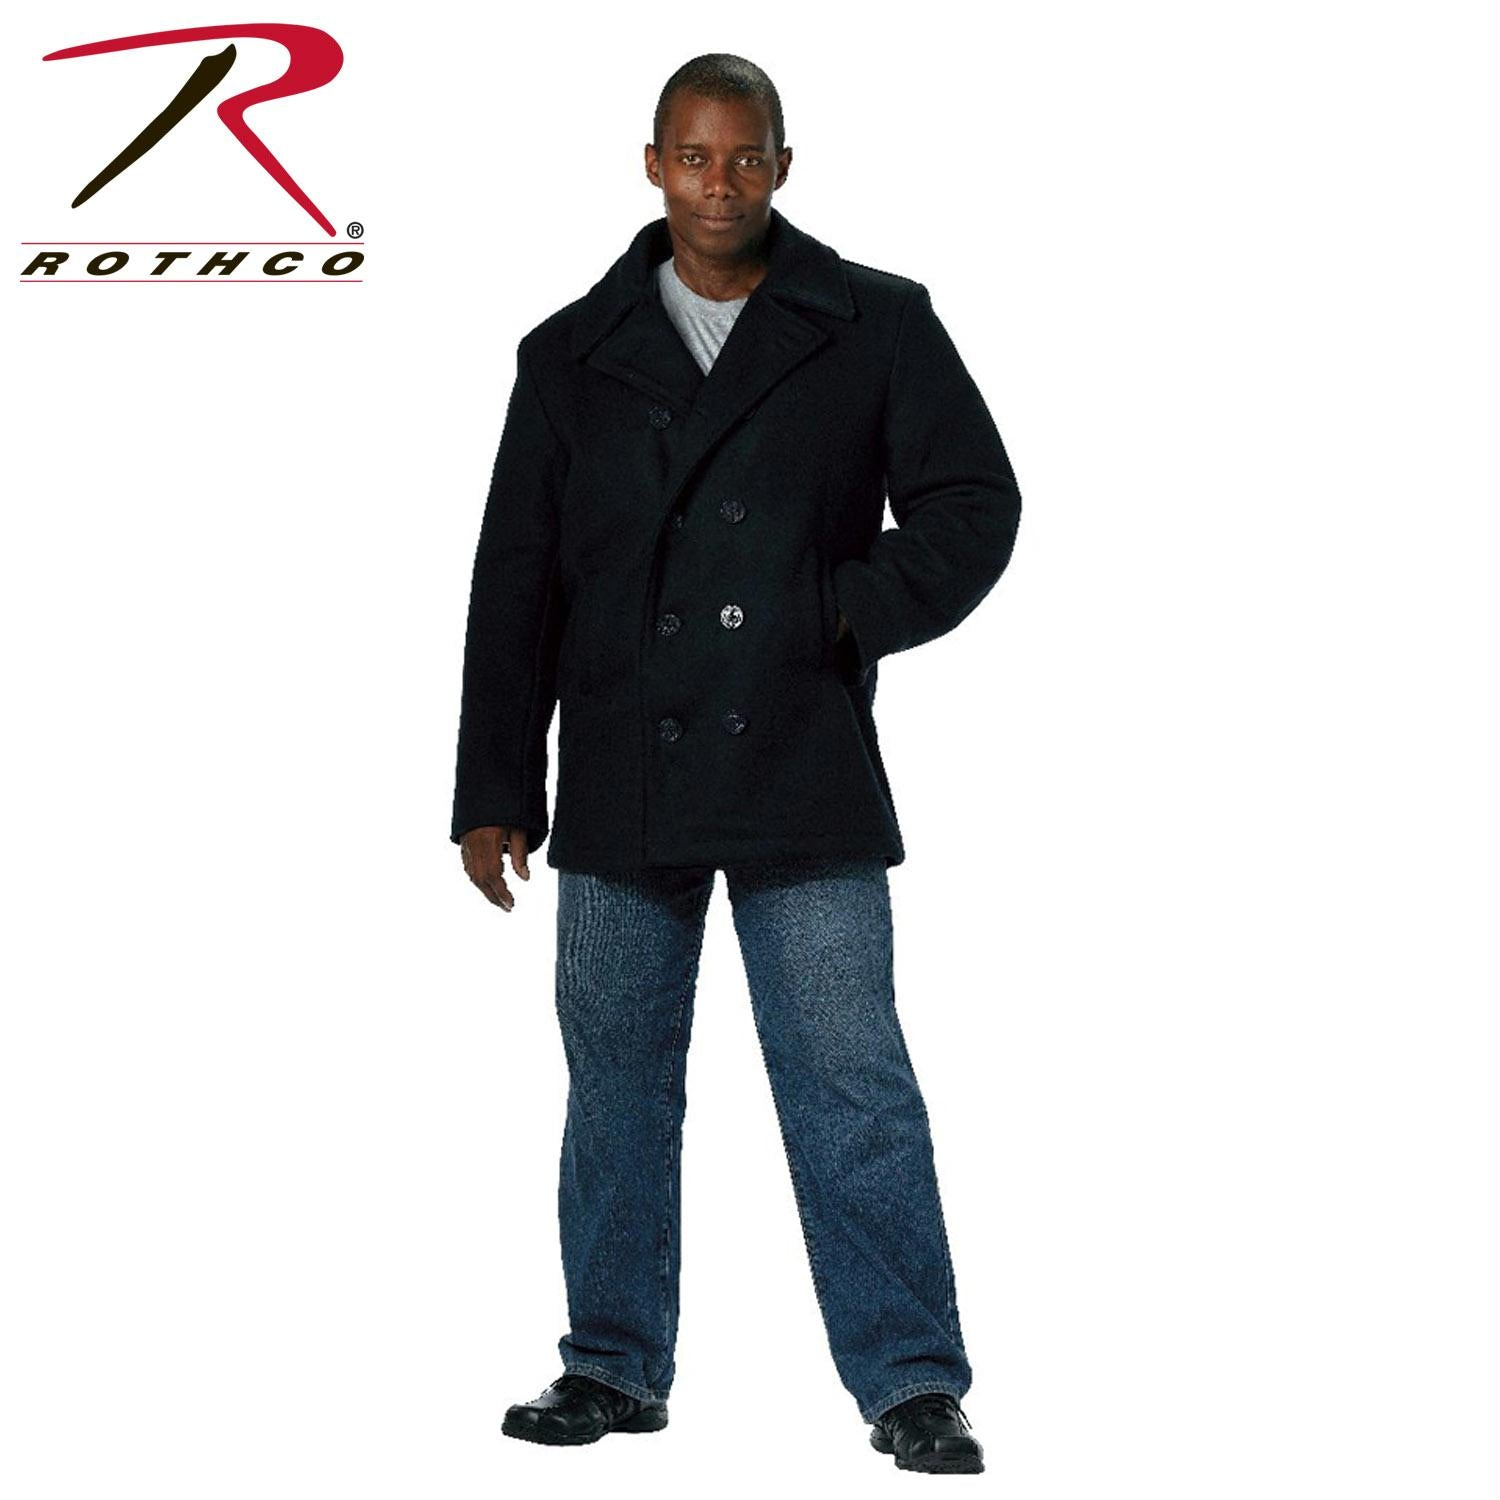 Rothco US Navy Type Pea Coat - Navy Blue / XL